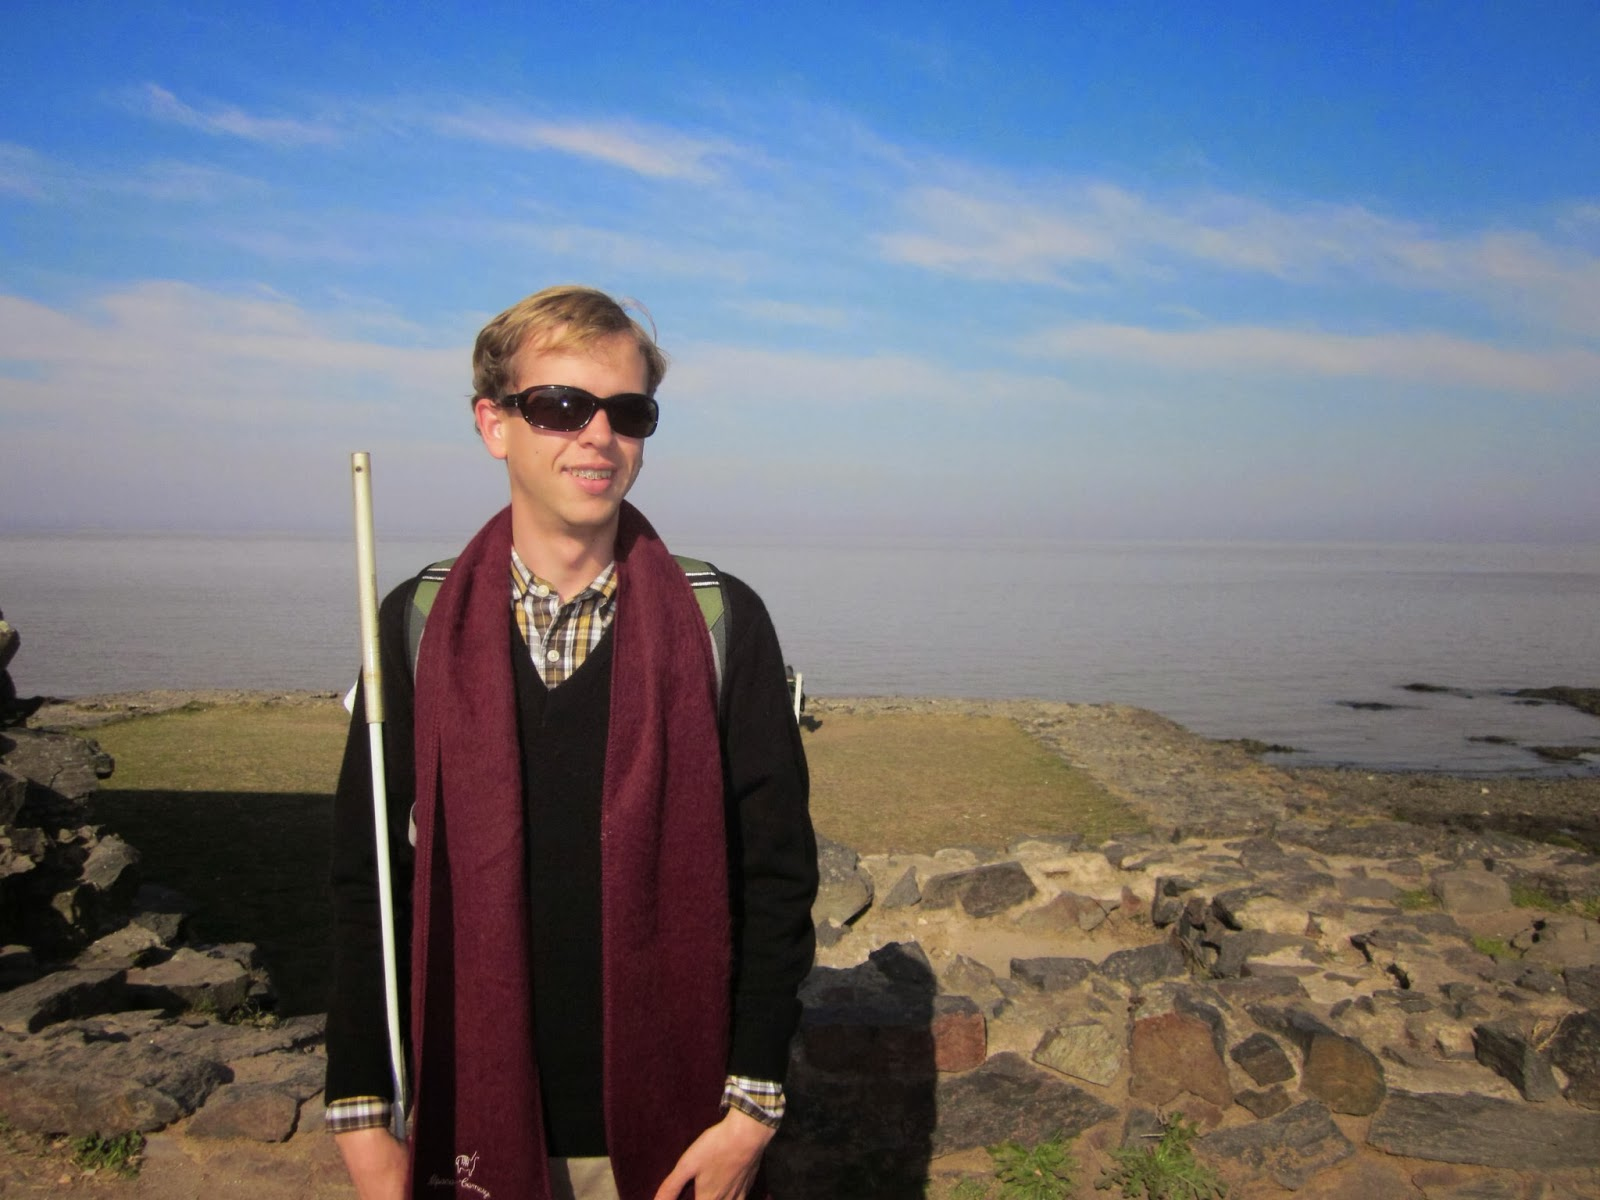 Picture of Justin, young blond man smiling and wearing sunglasses and a scarf and holding his white can at his side standing in front of a rocky beach with the coastline in the background